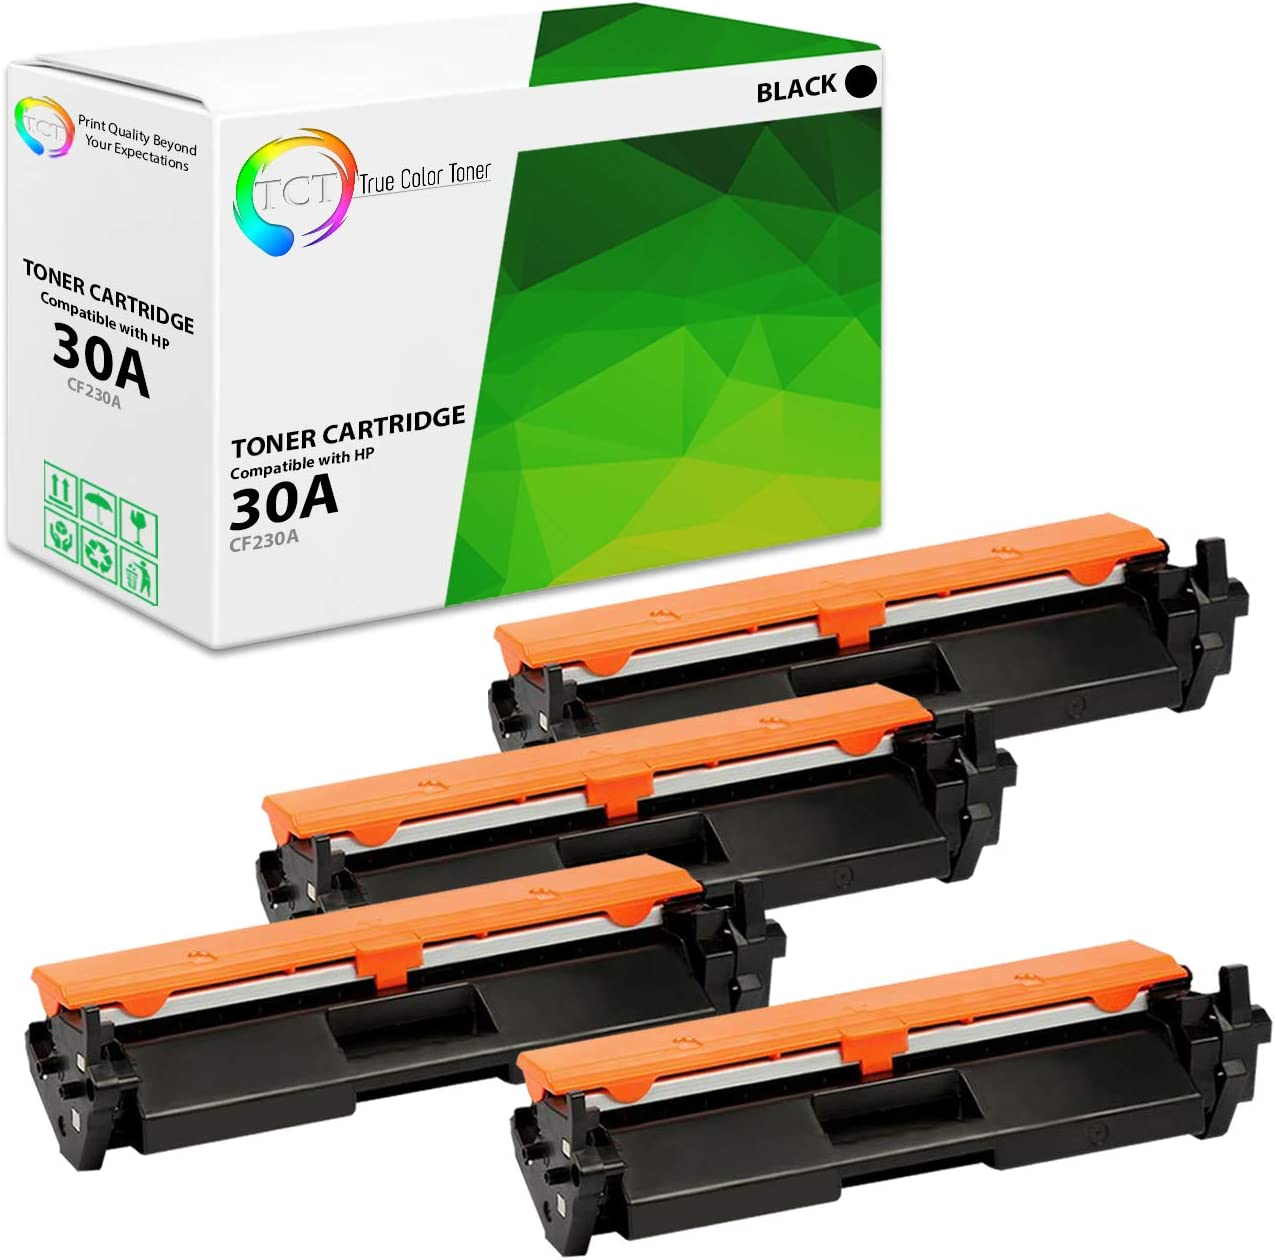 TCT Deluxe Premium Compatible Toner Cartridge Max 67% OFF 30A Replacement for HP CF